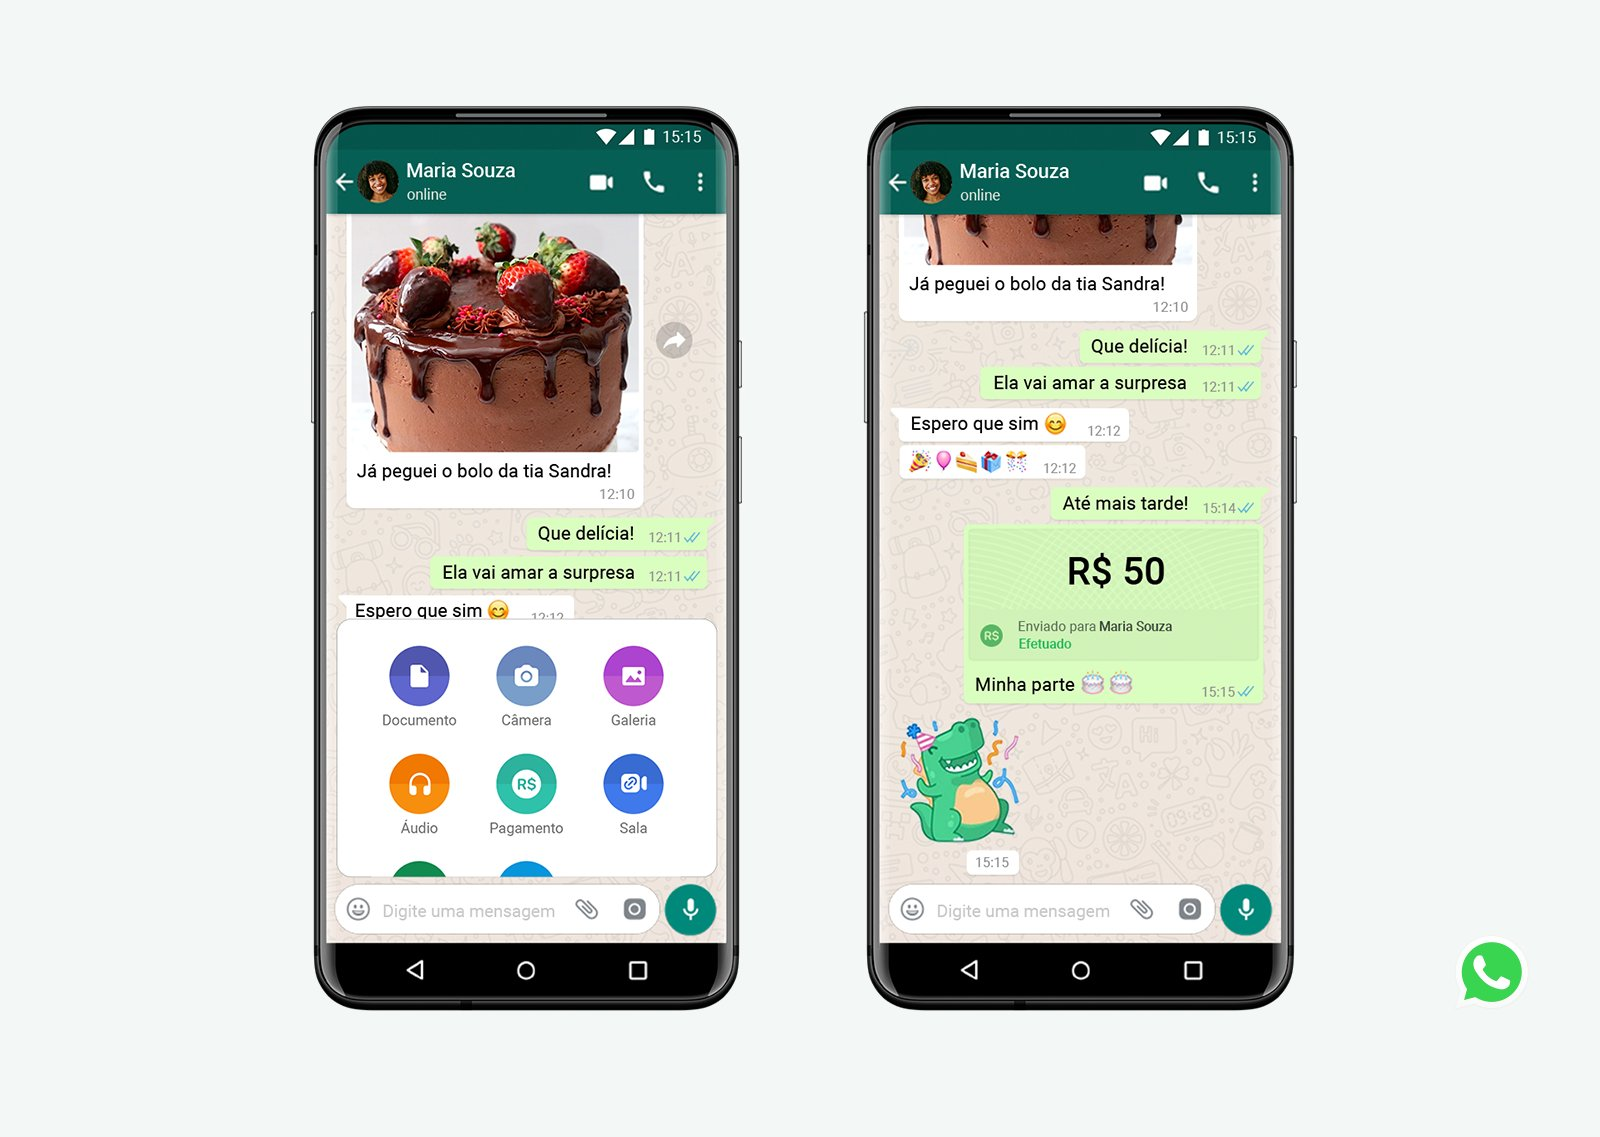 WhatsApp is again going to launch its payment service in Brazil after it was halted by the Central Bank of Brazil in the mid of 2020